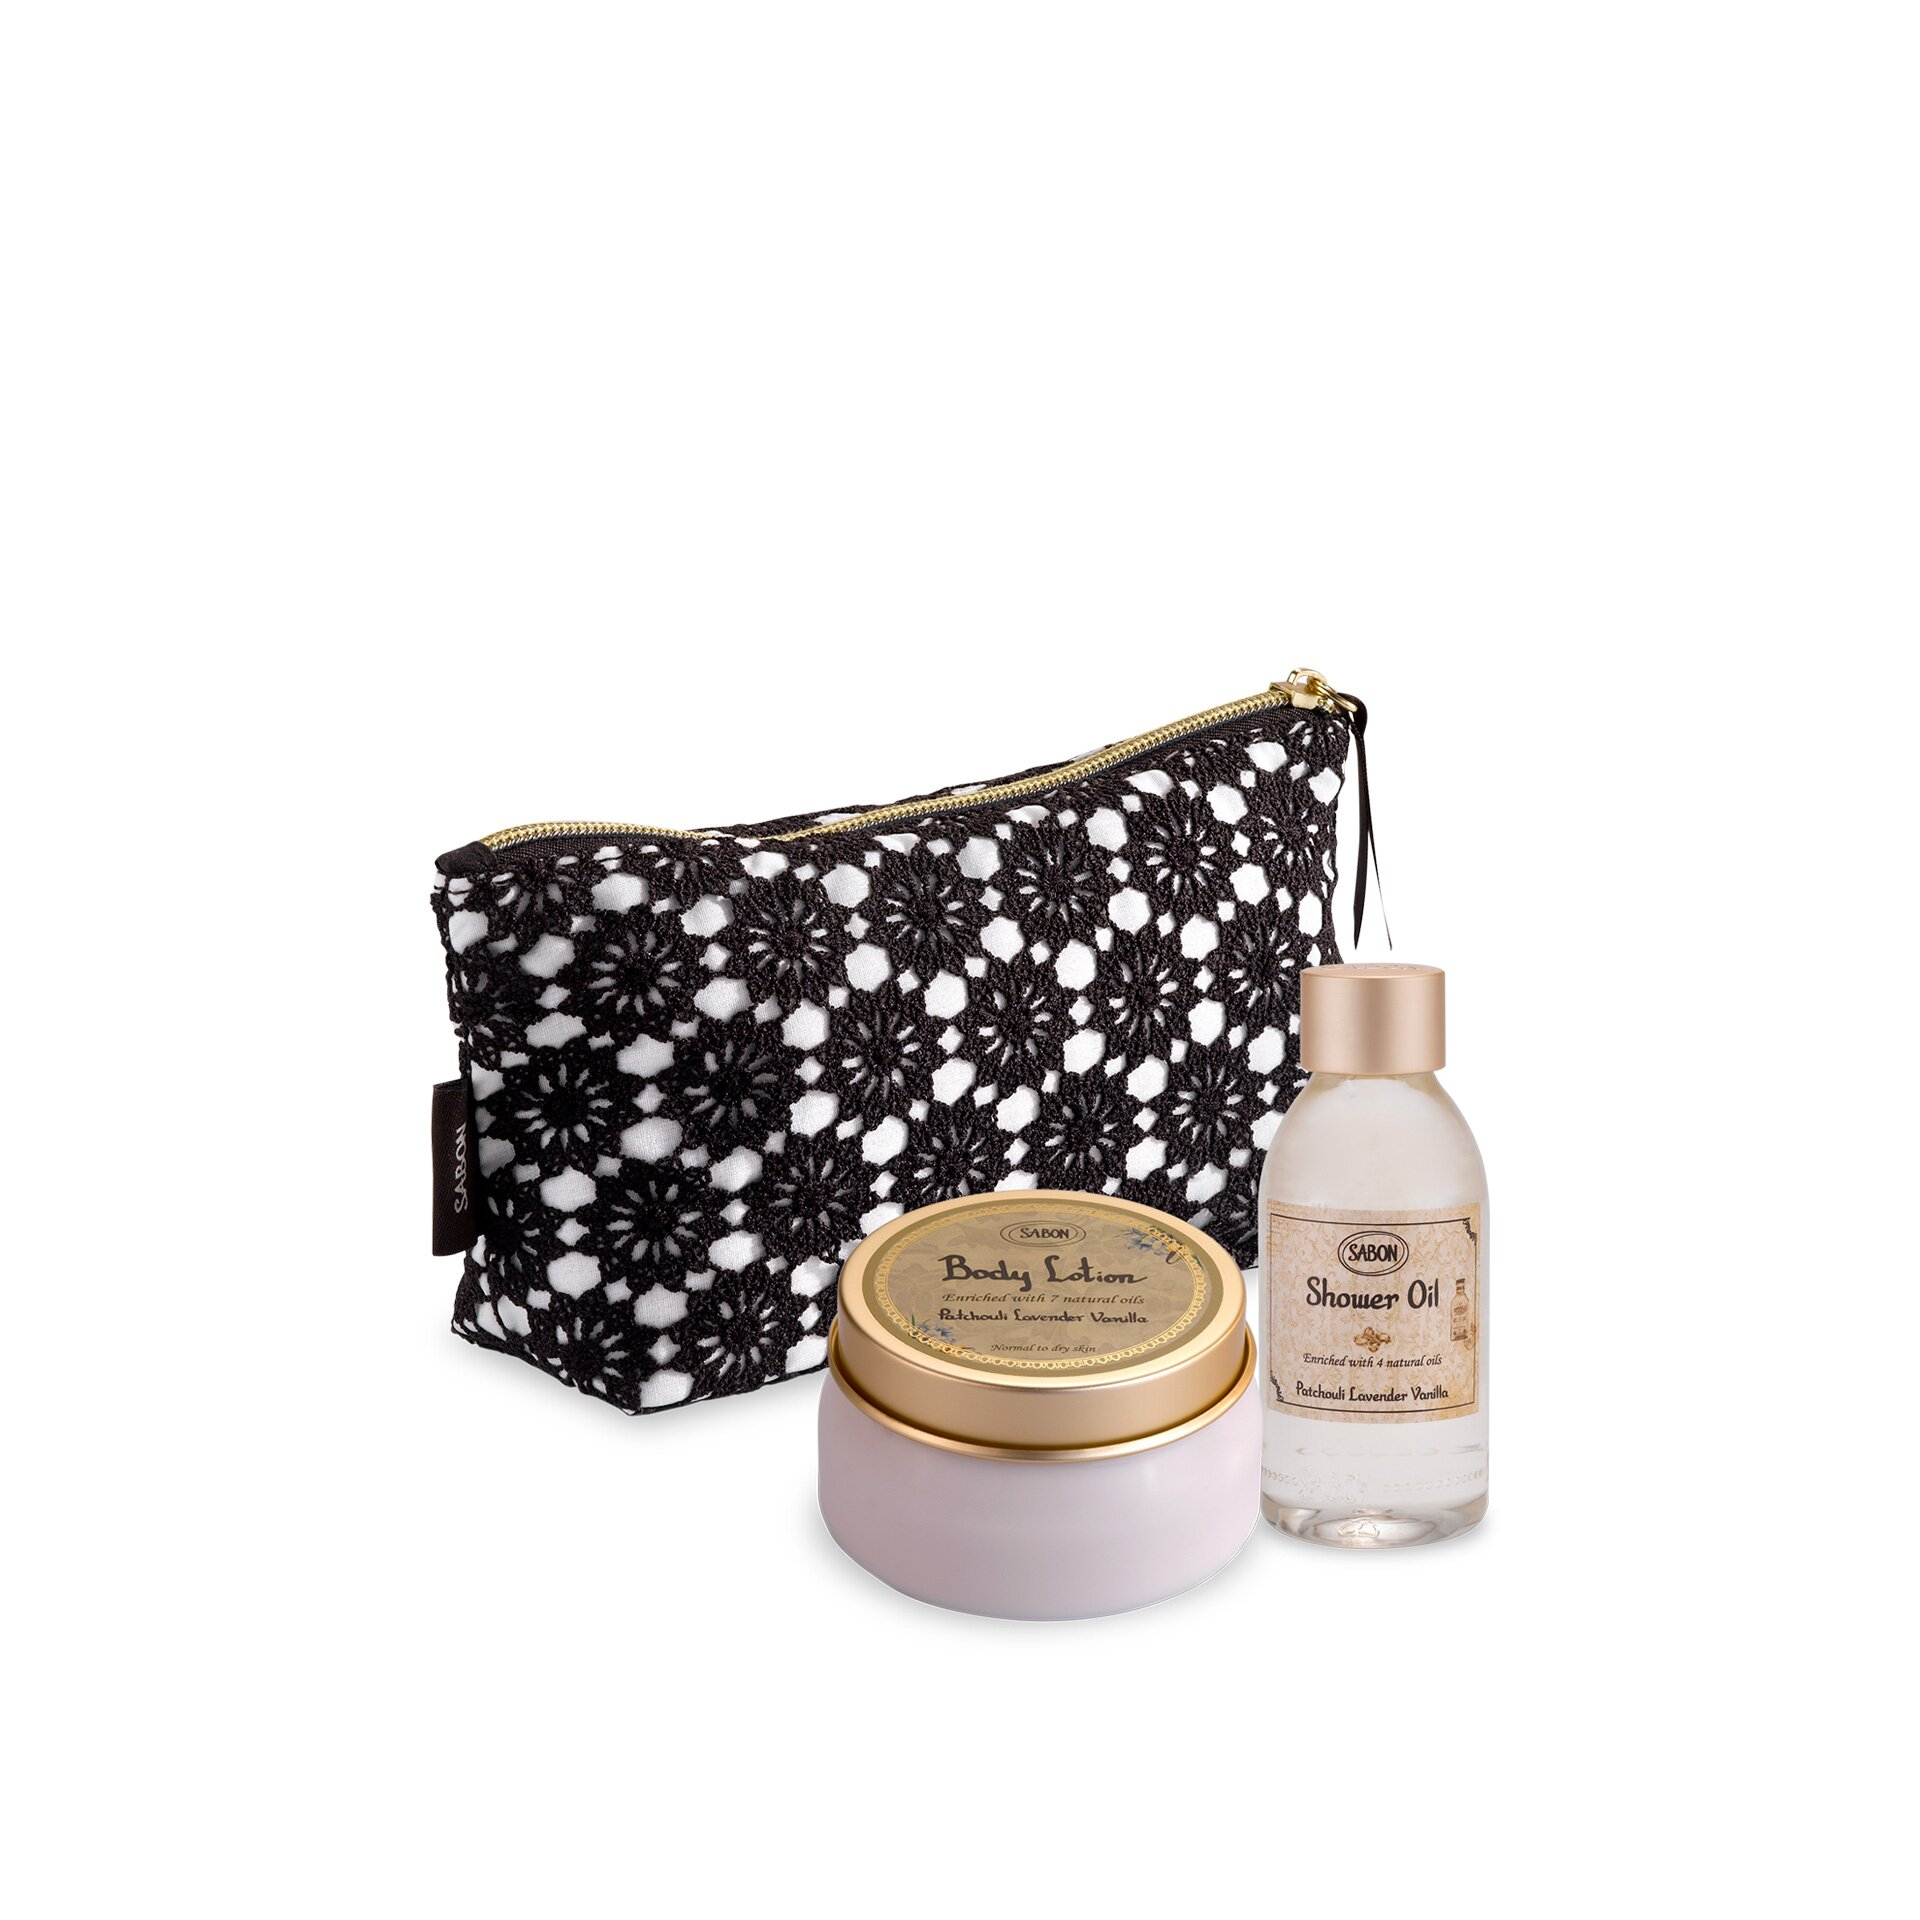 Gift Set - Access - PLV - 3